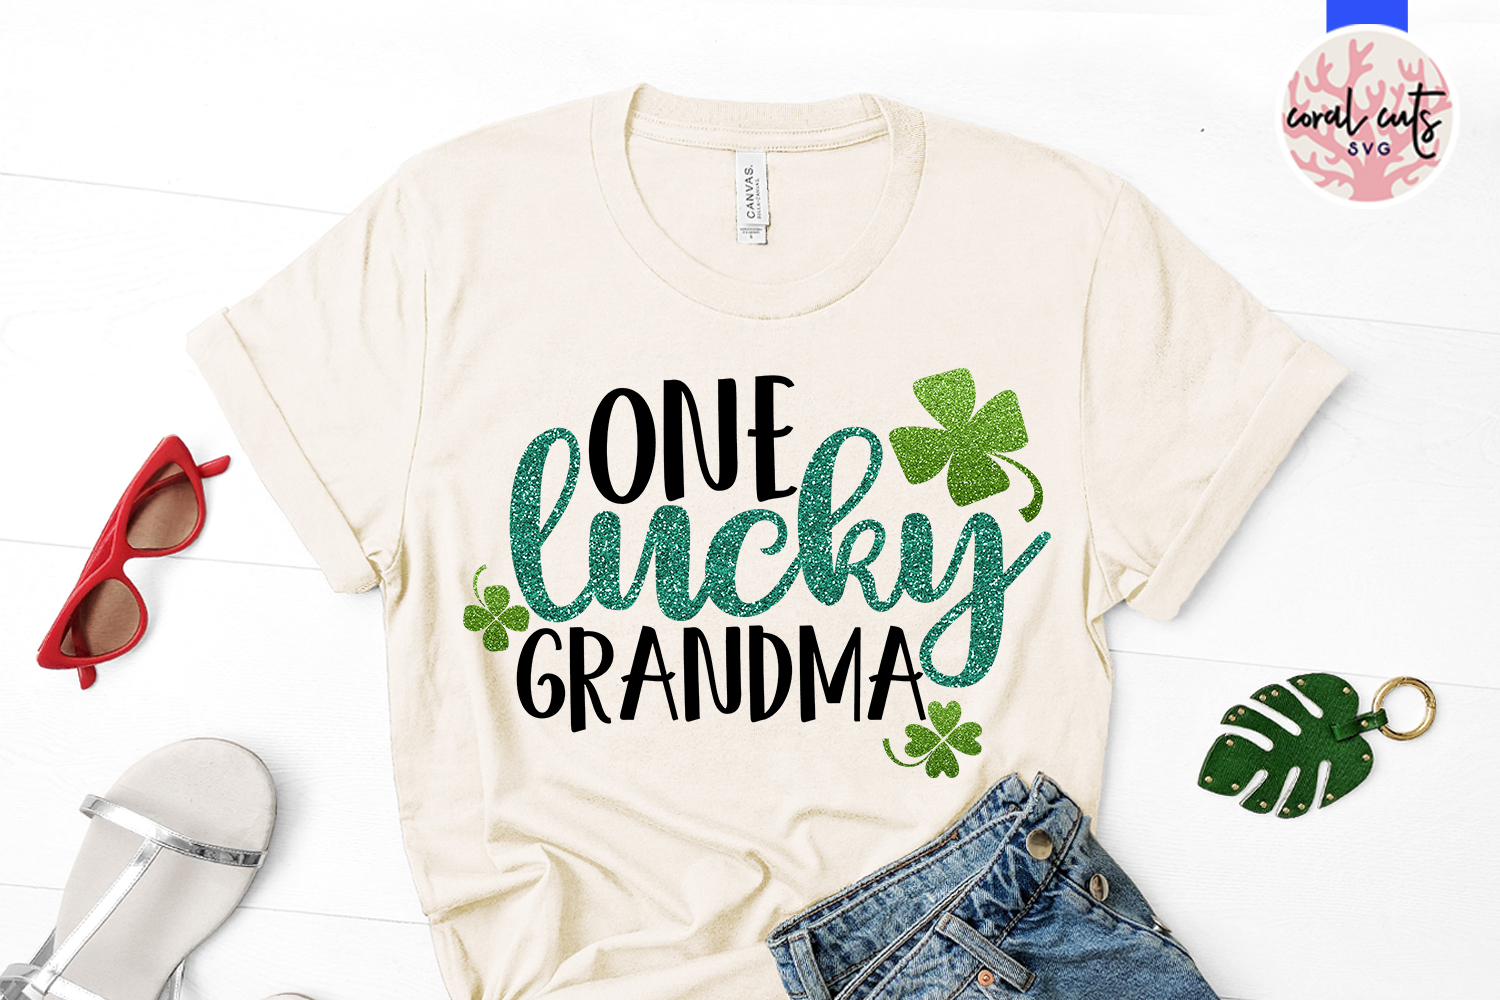 One lucky grandma - St. Patrick's Day SVG EPS DXF PNG example image 2